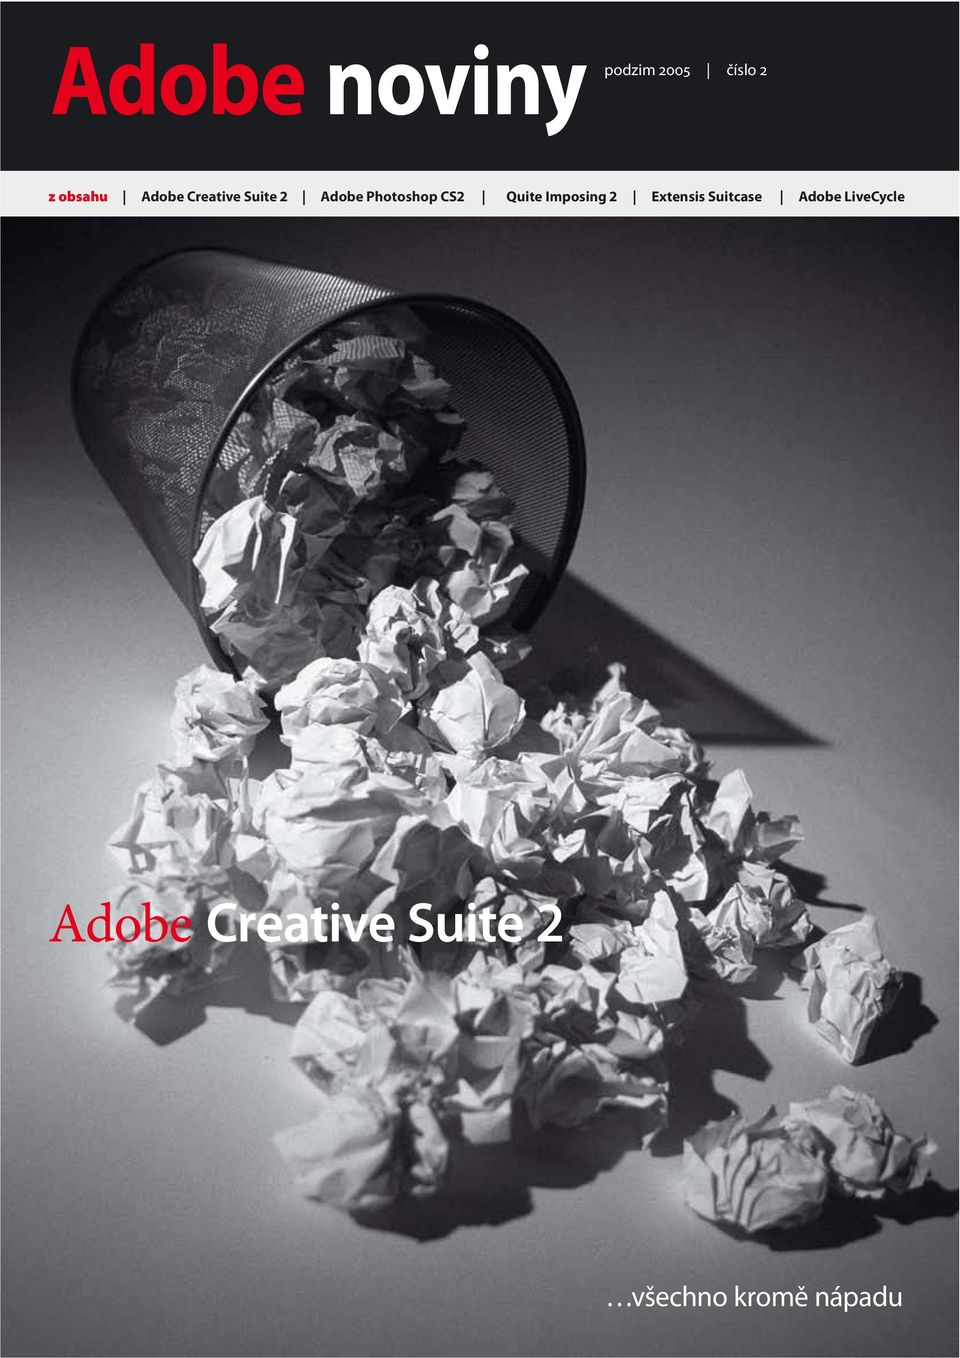 Adobe Creative Suite 2 Adobe Photoshop CS2 Quite